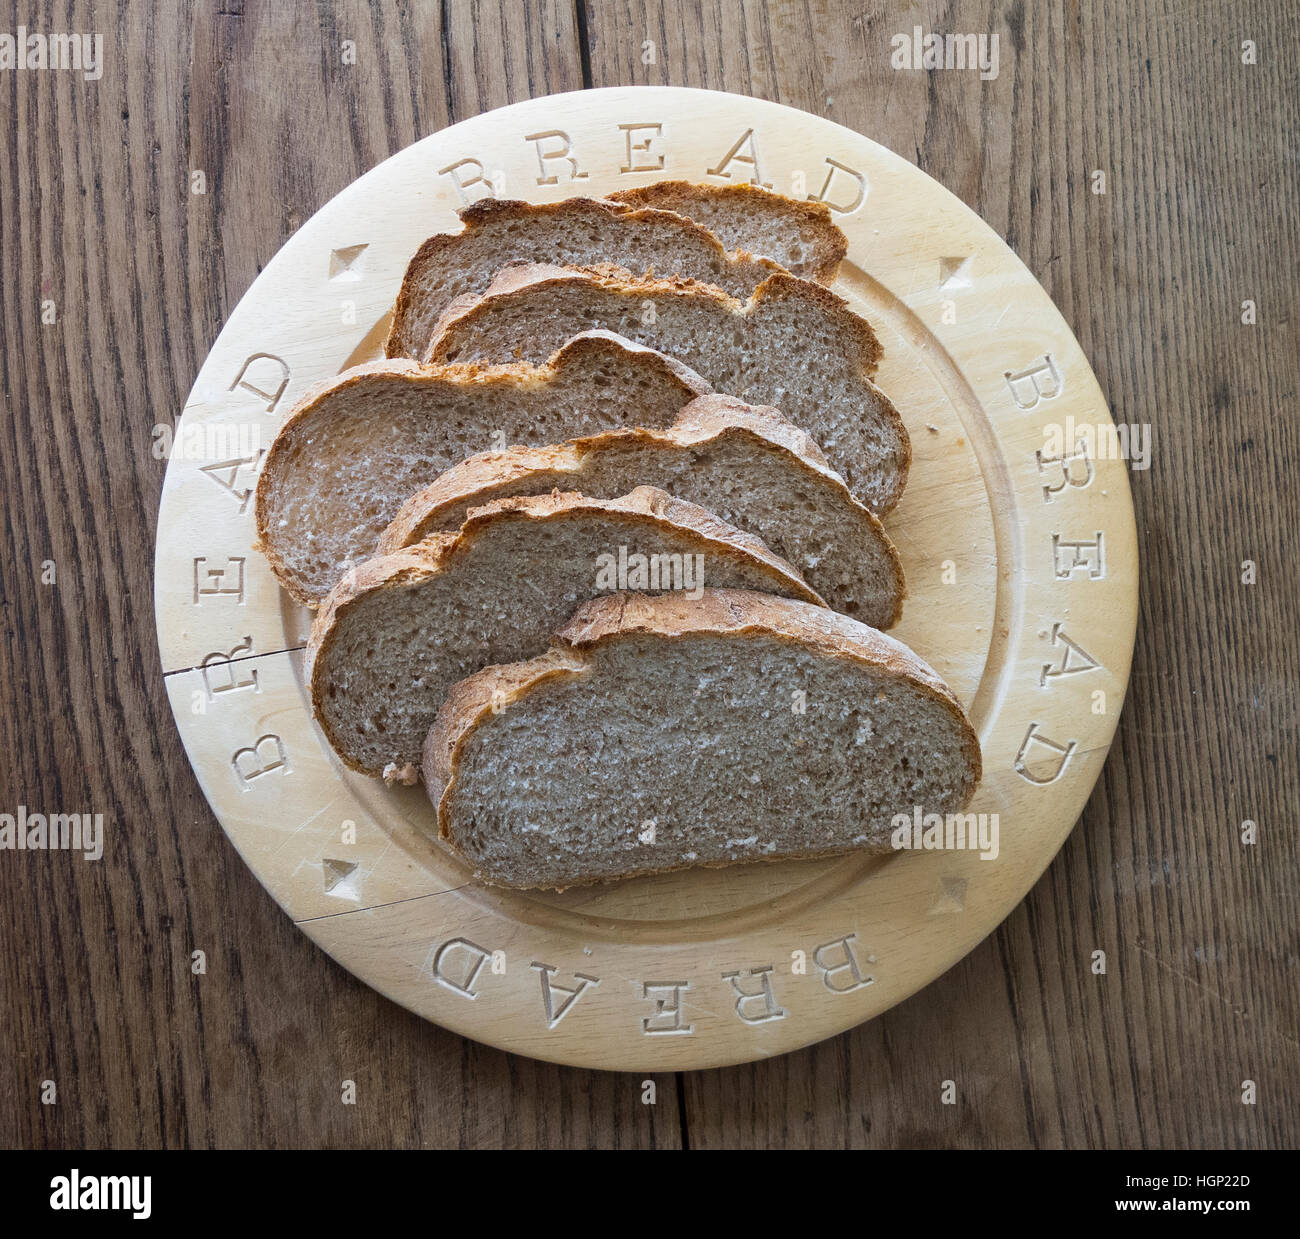 Sliced wholemeal brown bread on a wooden bread board on a wooden table - Stock Image